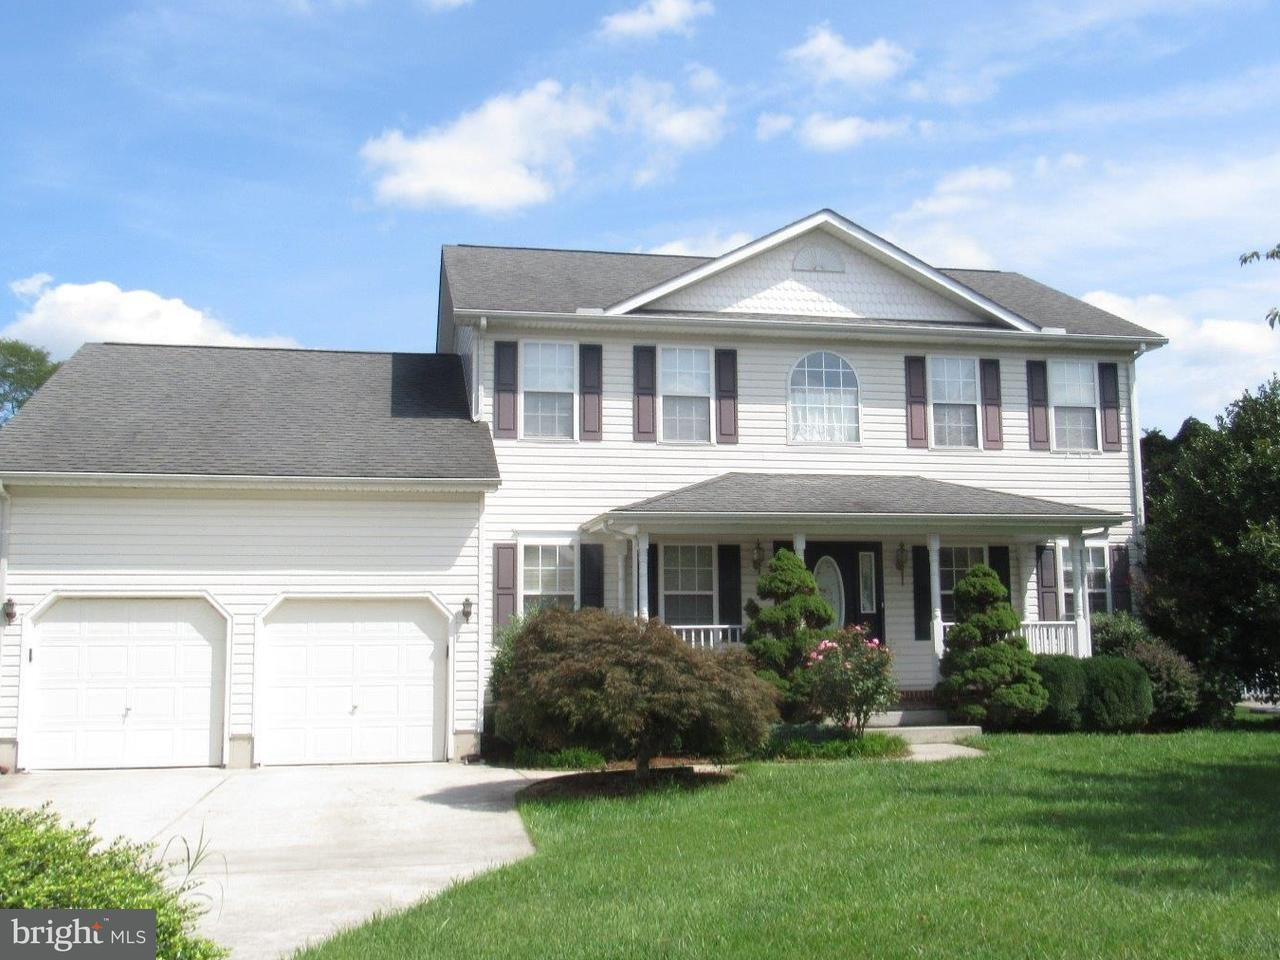 Single Family Home for Rent at 101 GREAT GENEVA Drive Dover, Delaware 19901 United States